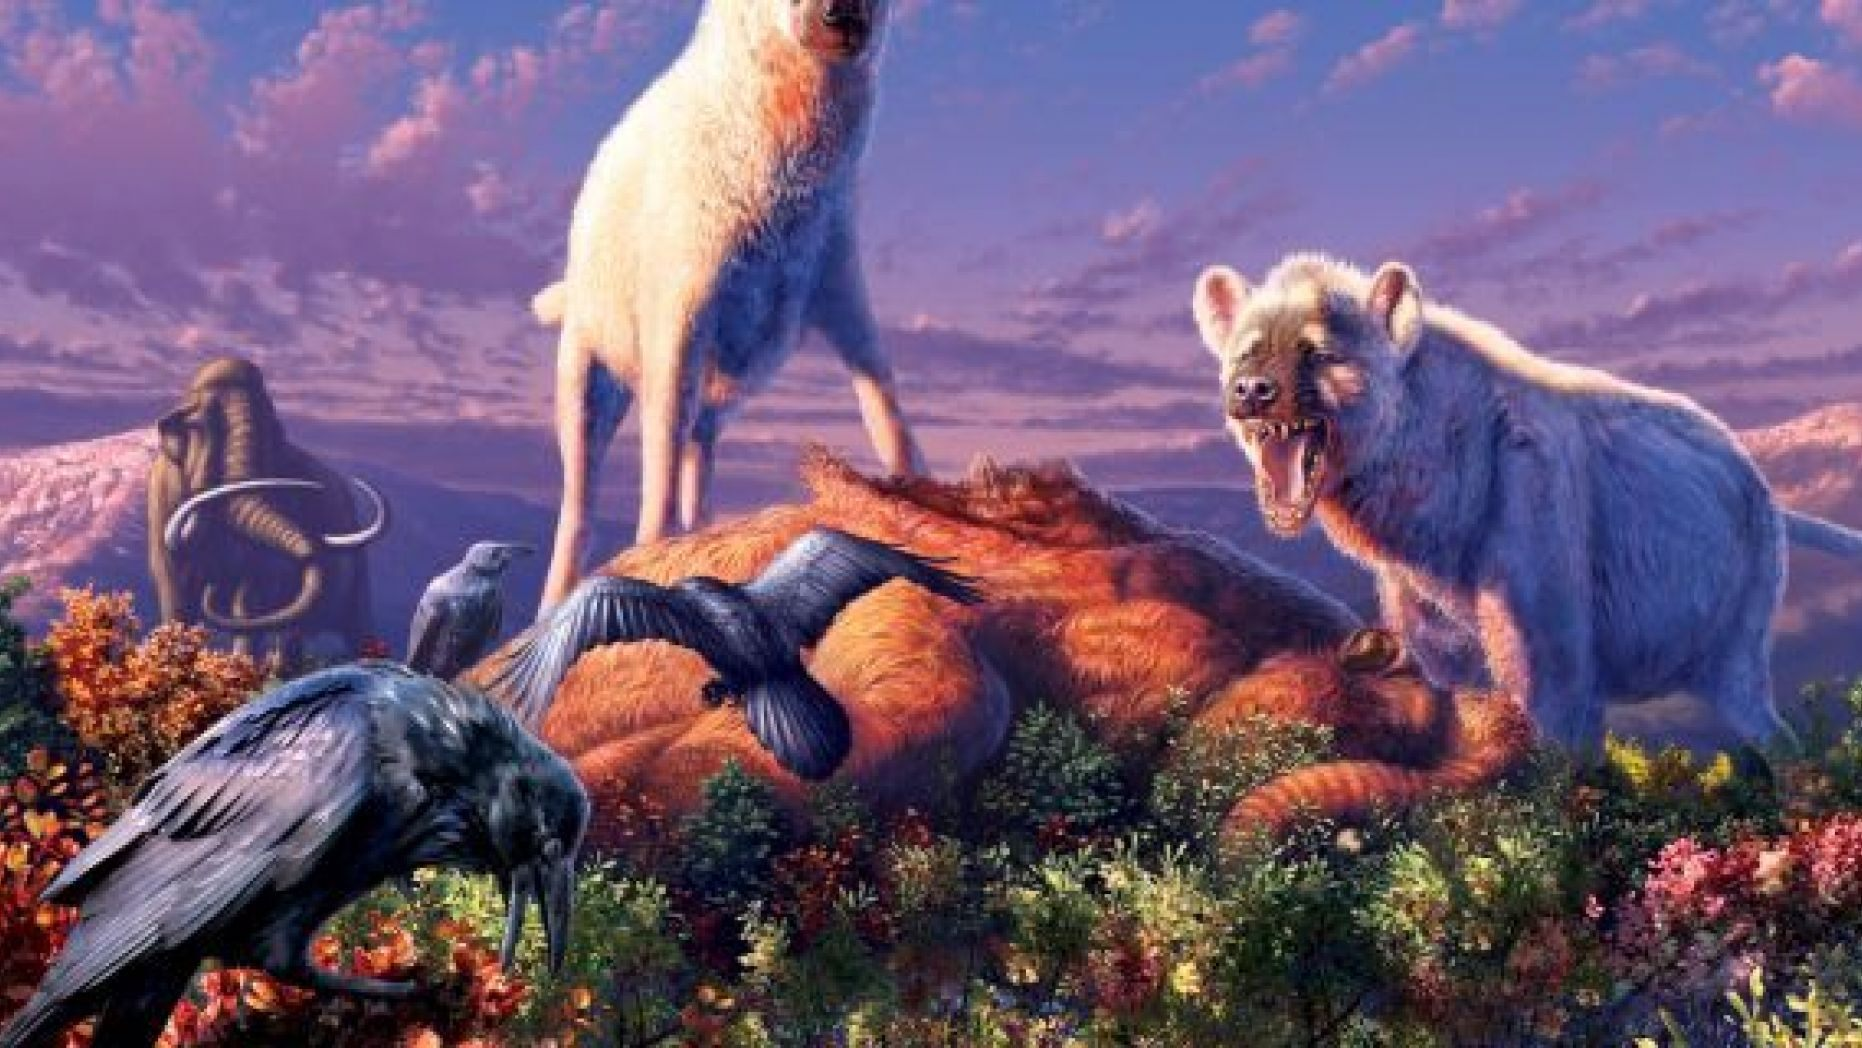 An illustration of two triumphant ancient hyenas (<i>Chasmaporthetes</i>) standing over their next meal in what is now the Yukon Territory of Canada.